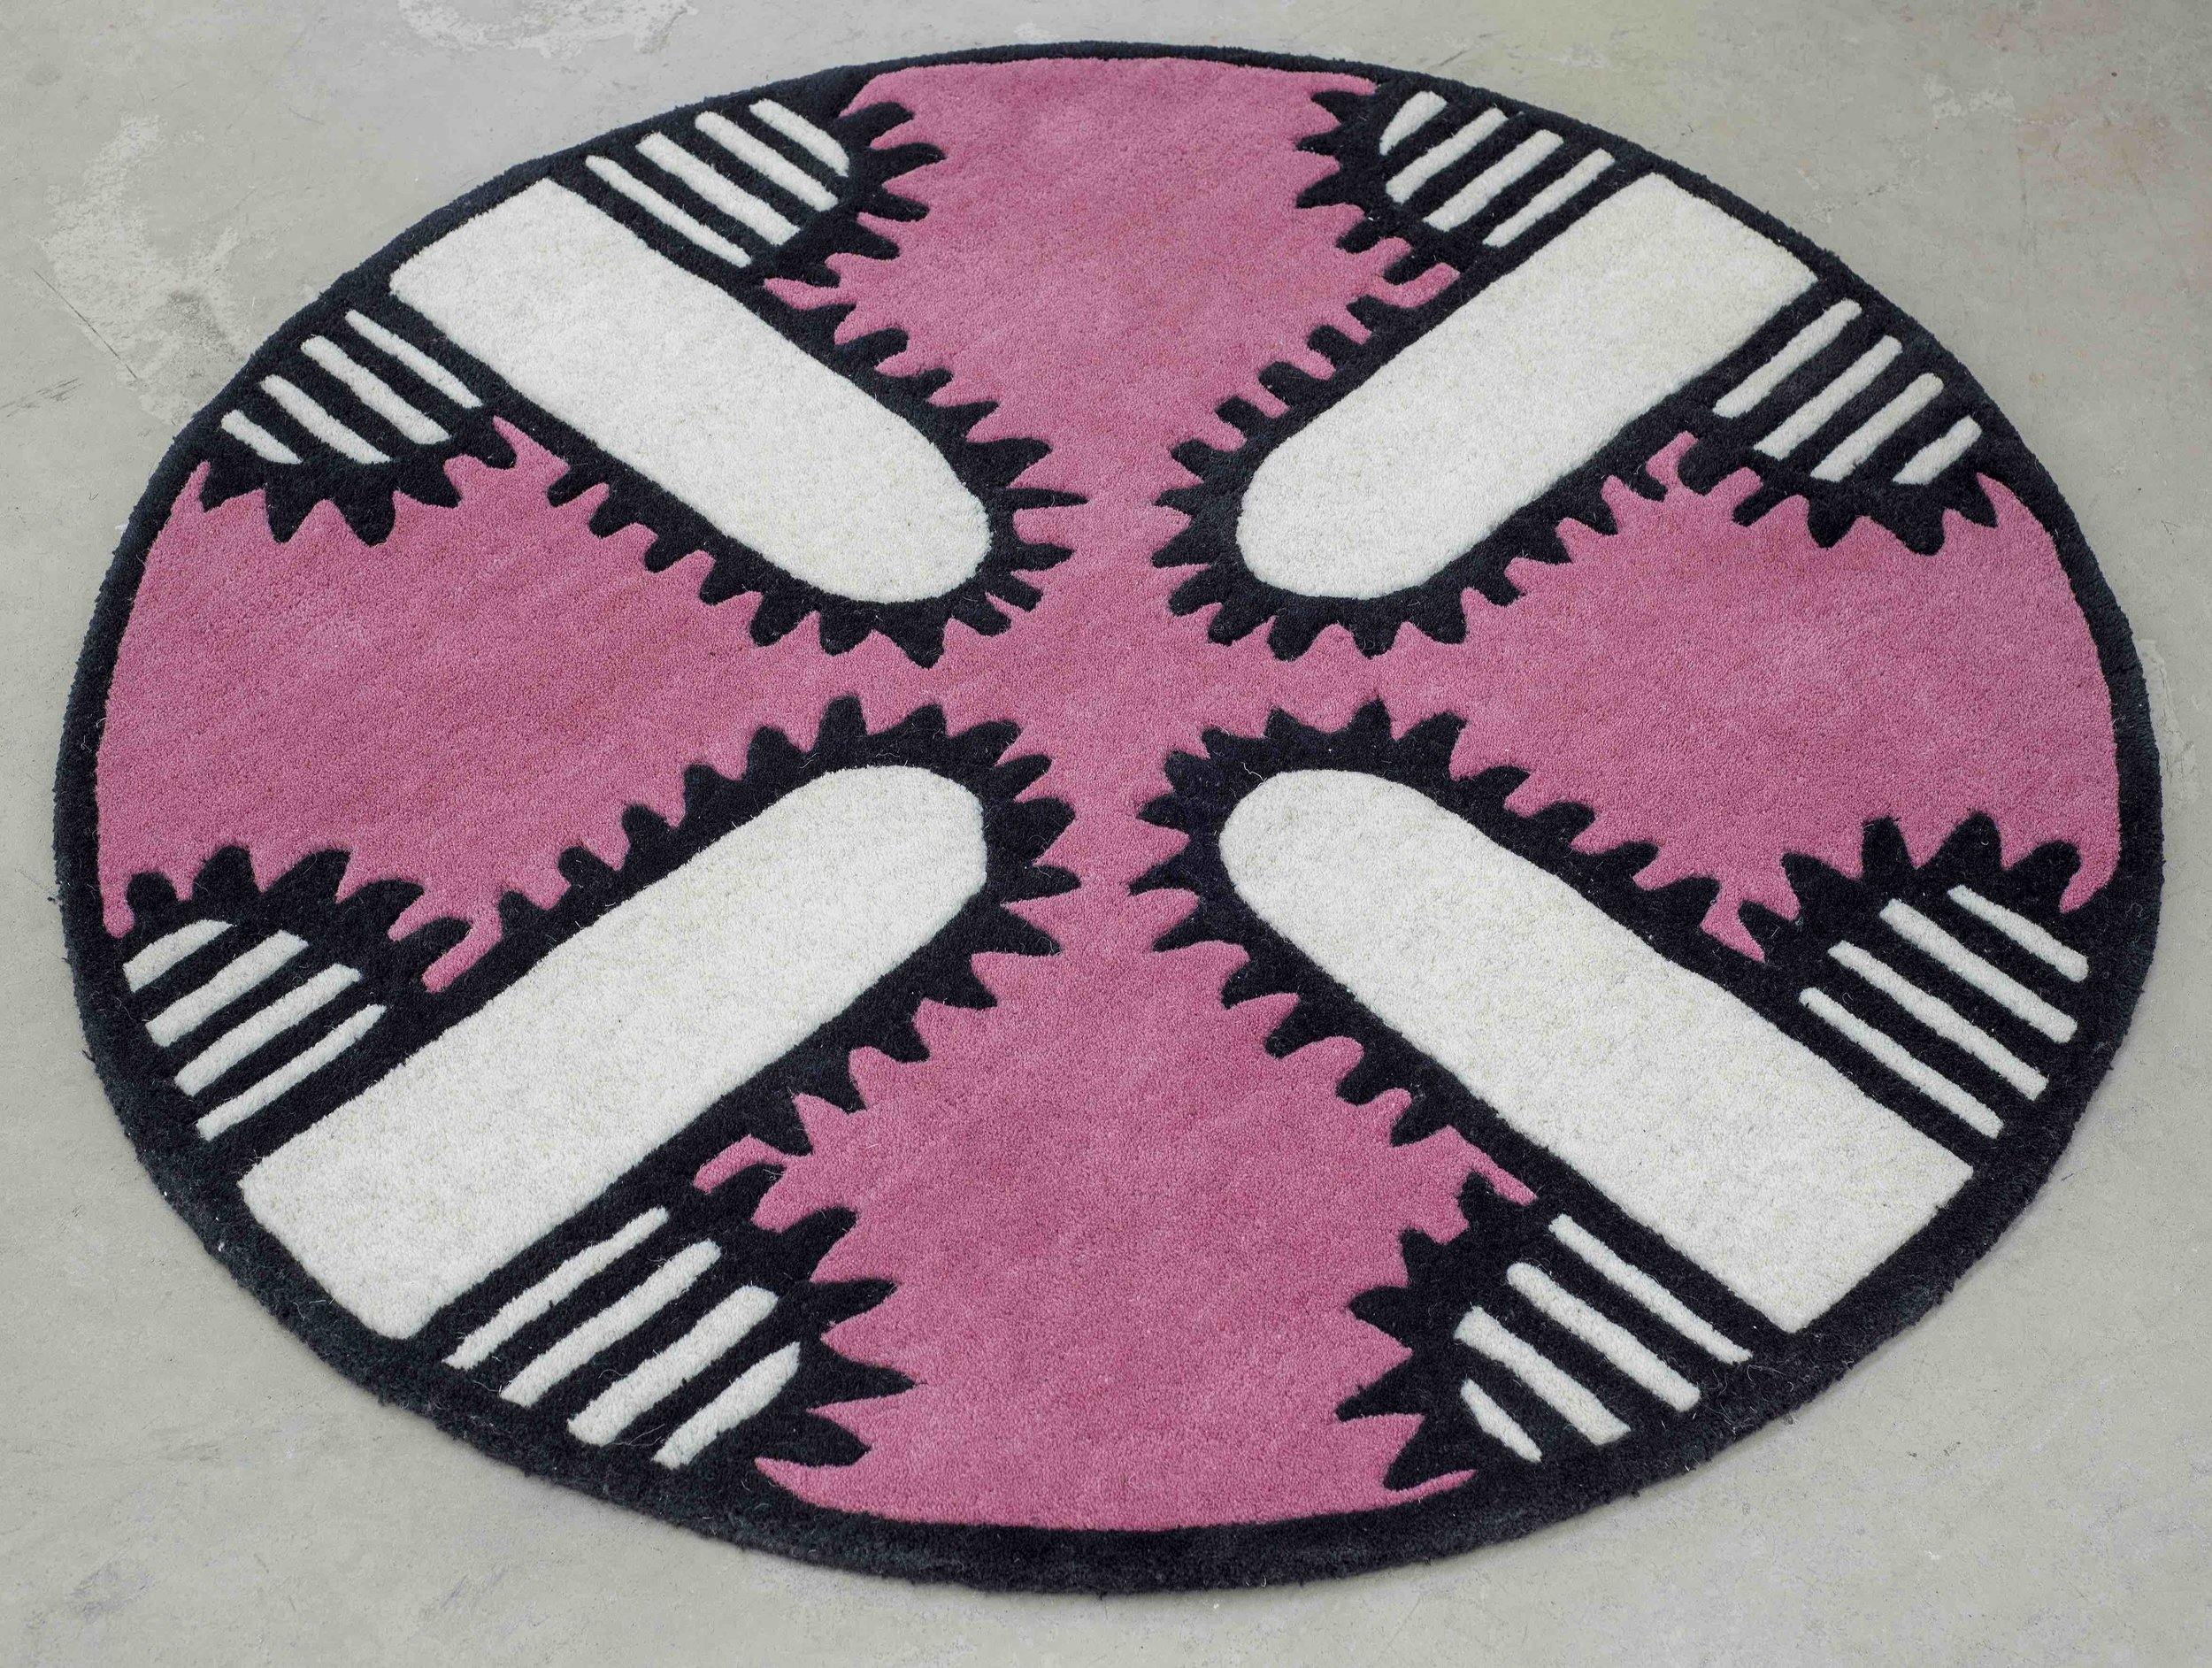 Joanne Tatham and Tom O'Sullivan  Are You LOCATIONALIZED (rug)  2016 Hand-tufted wool rug ¼h x 37 ⅘w x 37 ⅘d in JTTO006